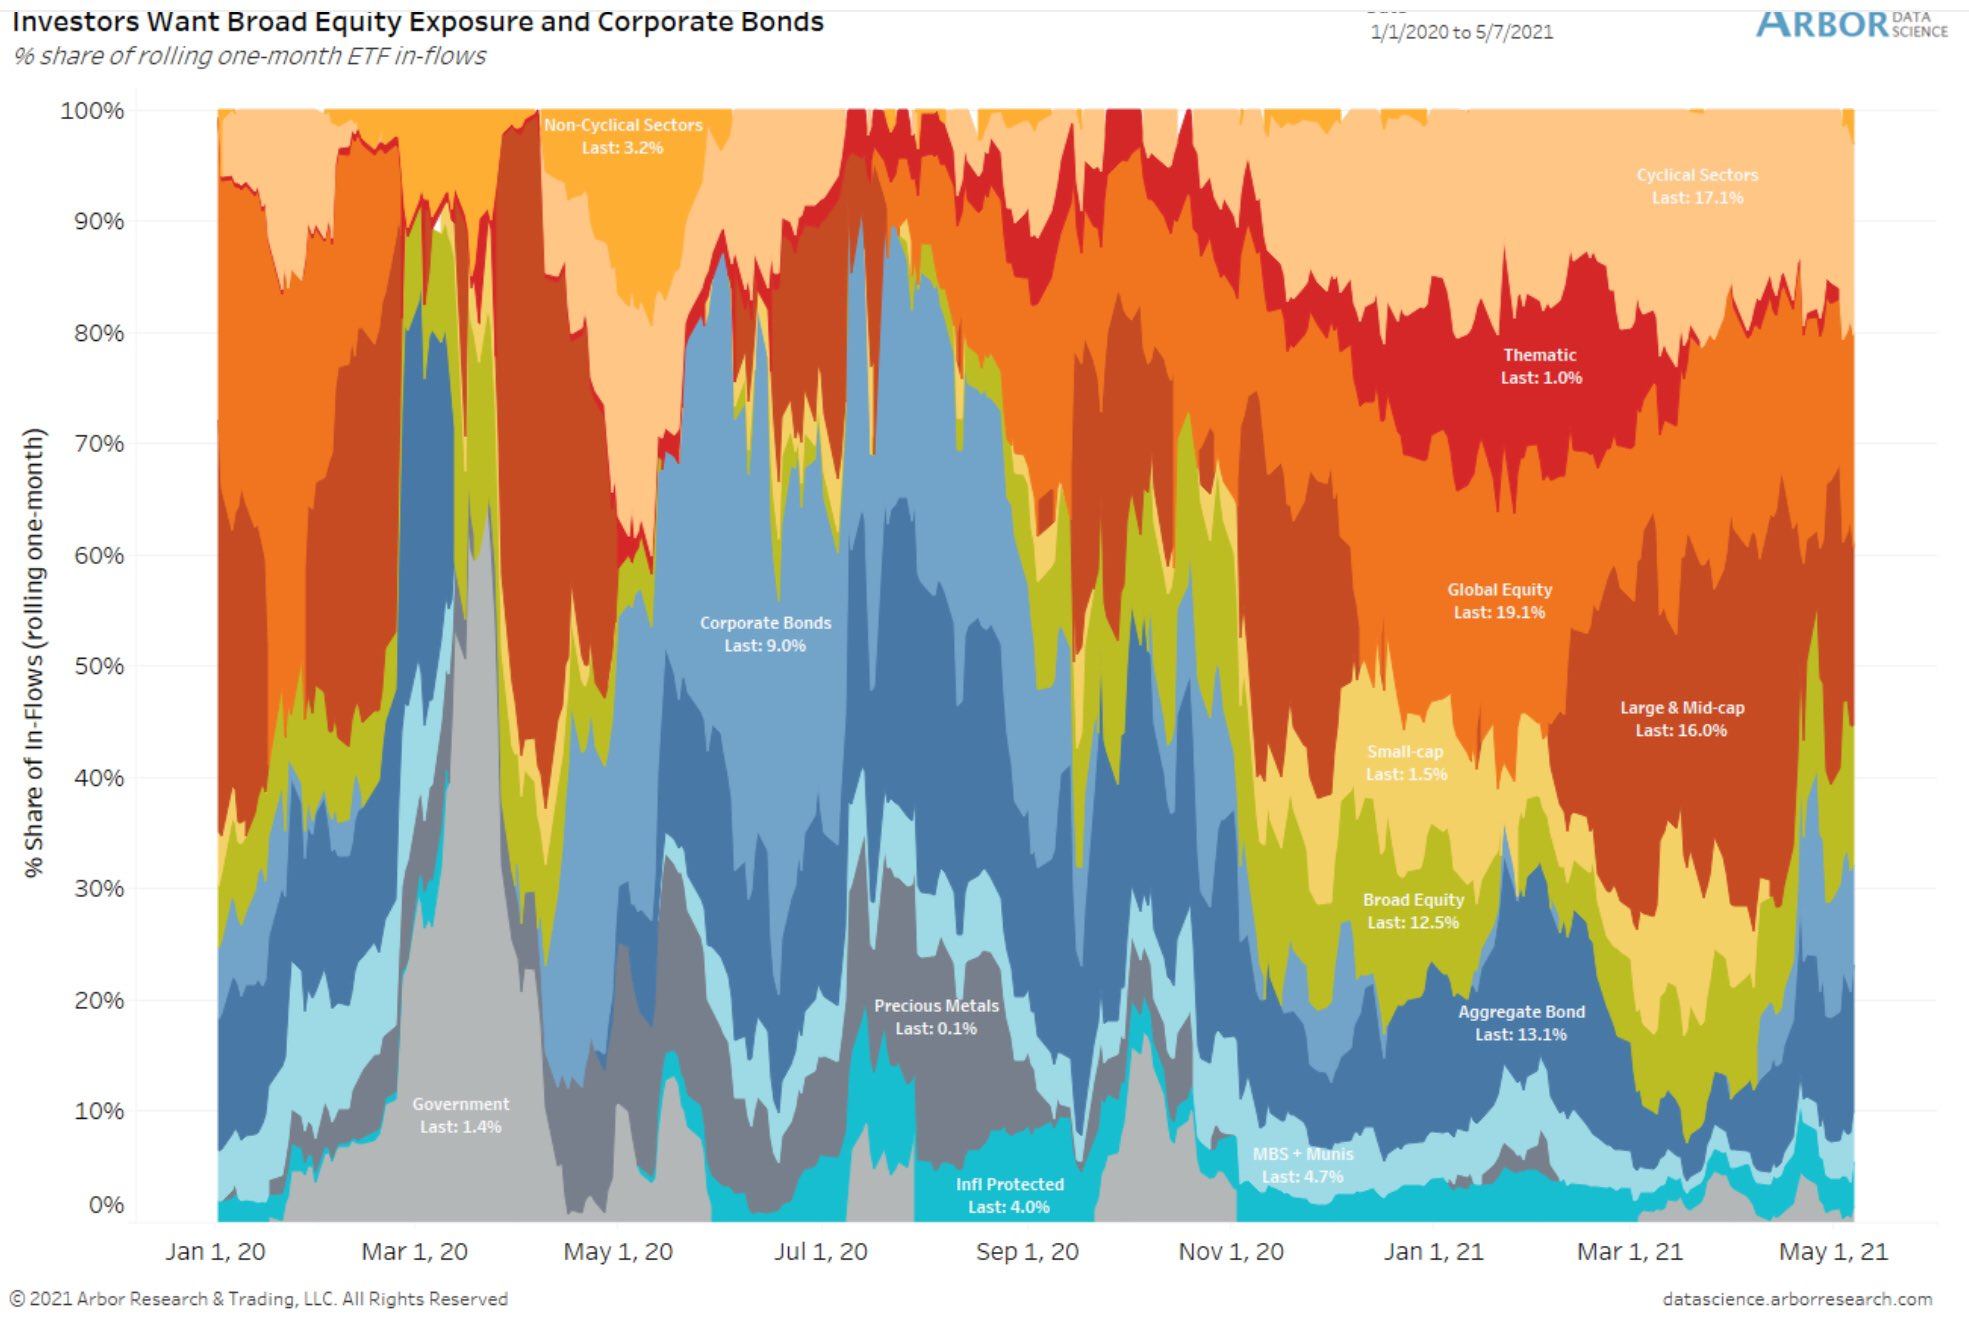 Equities are still first, but bonds are gaining interest